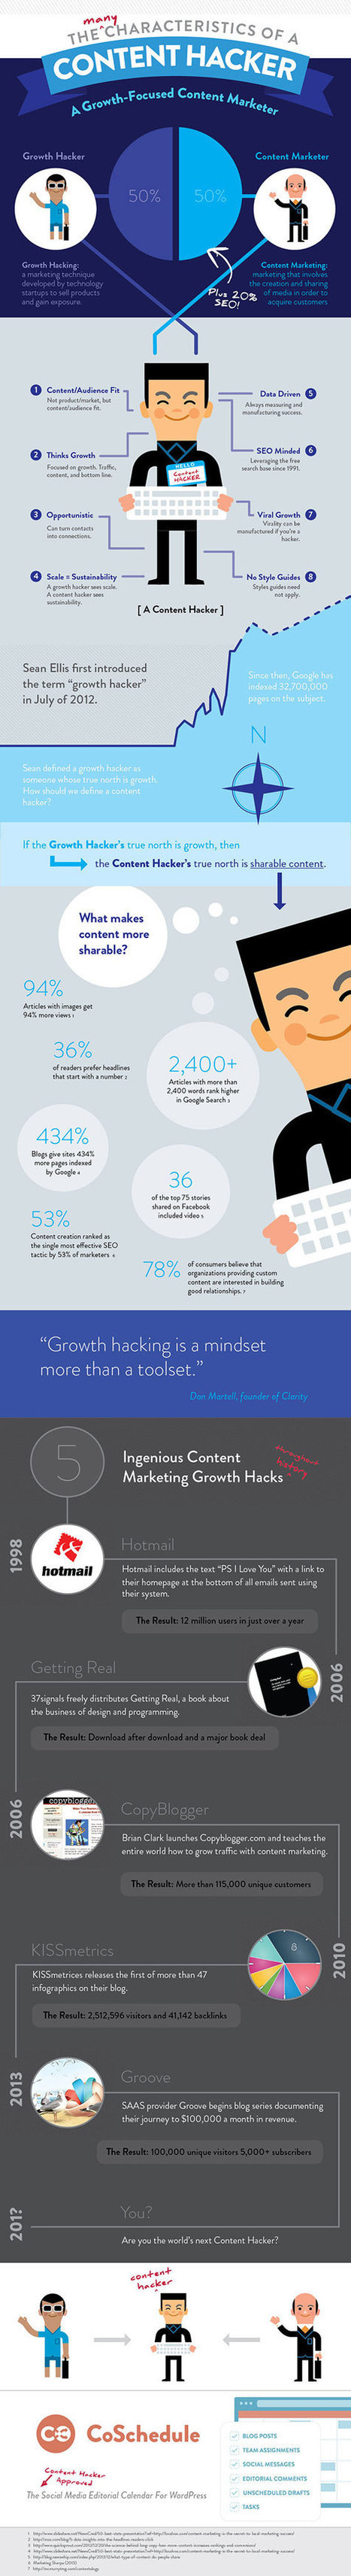 10 Characteristics of a Growth-Focused Content Marketer #Infographic | Content Marketing & Content Curation Tools For Brands | Scoop.it